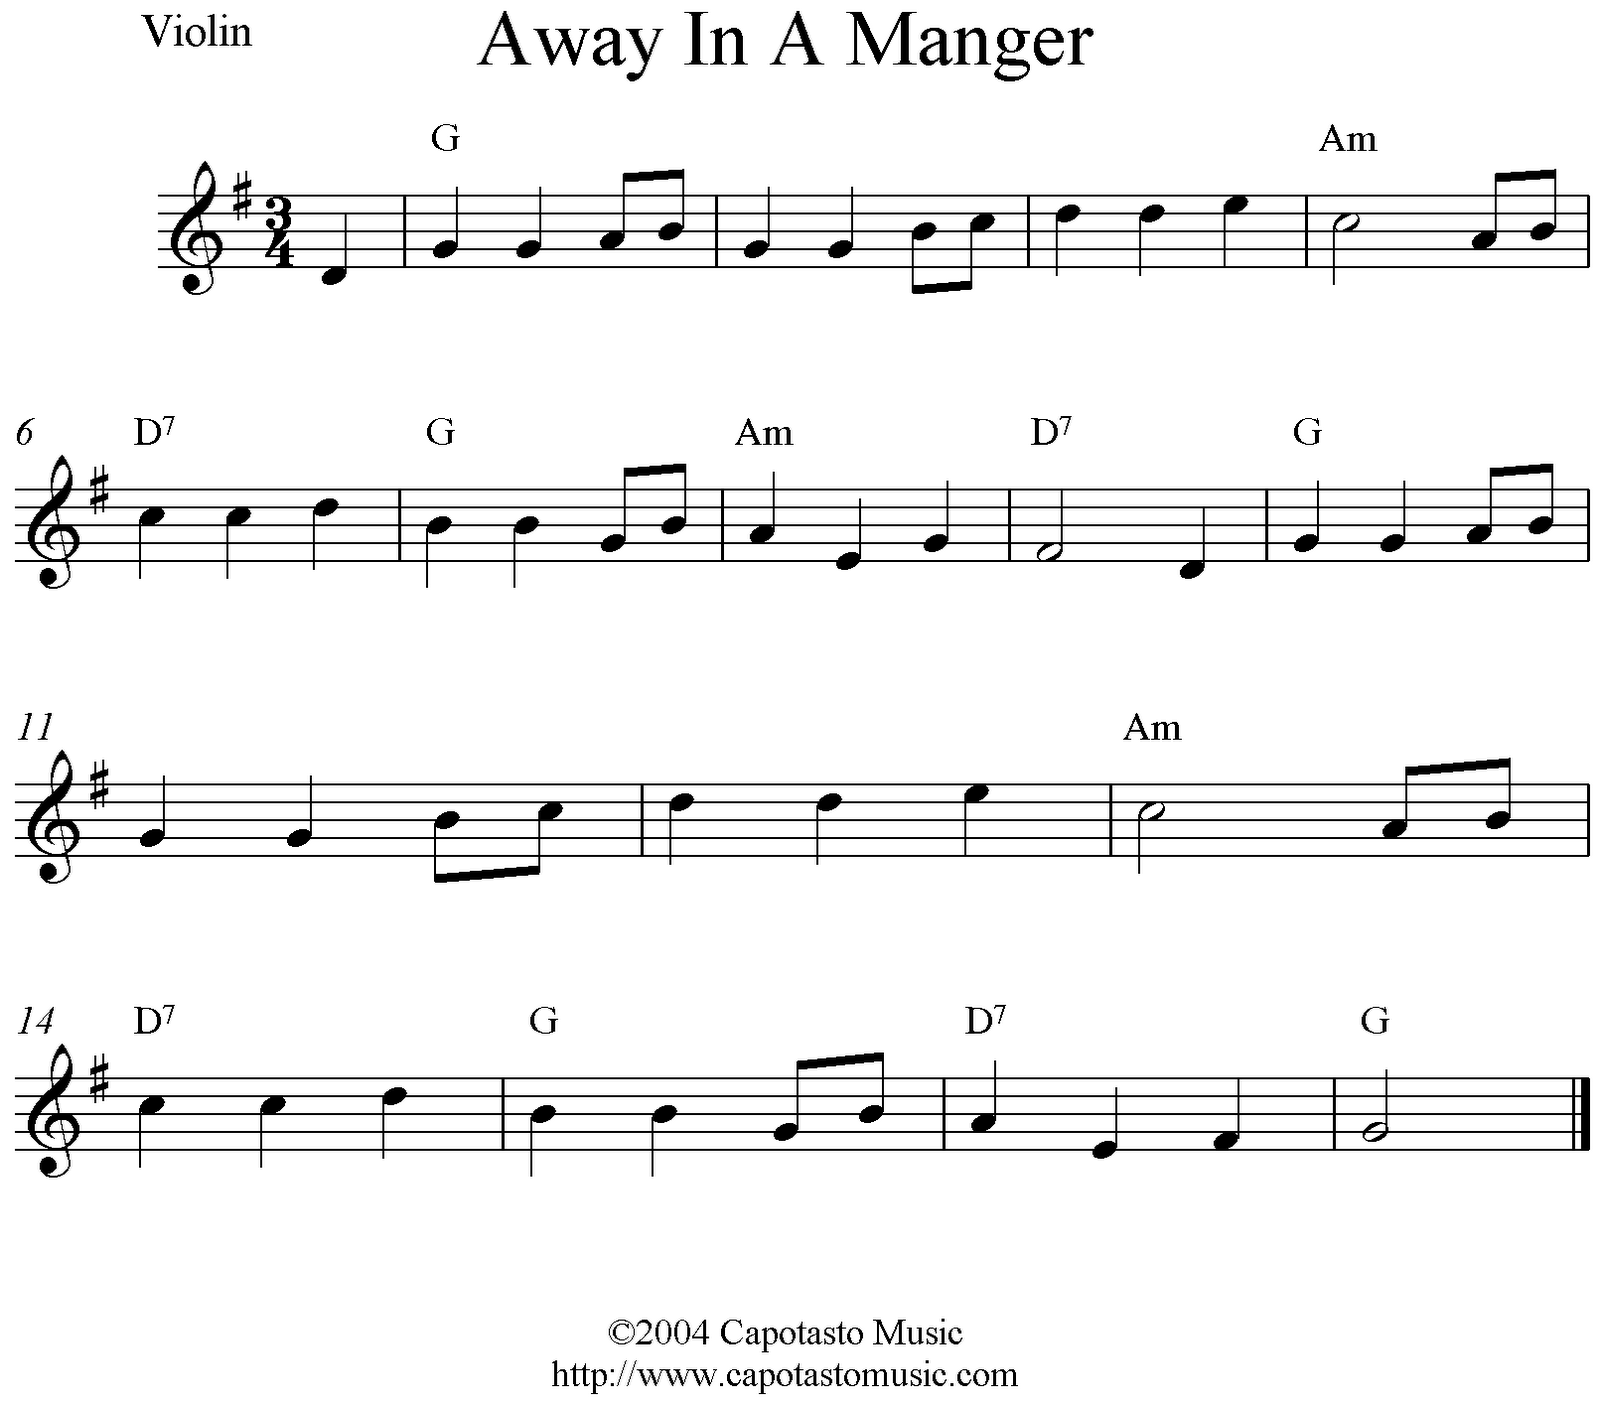 1000 Ideas About Easy Piano Songs On Pinterest: Violin Sheet Music Beginners Popular Songs